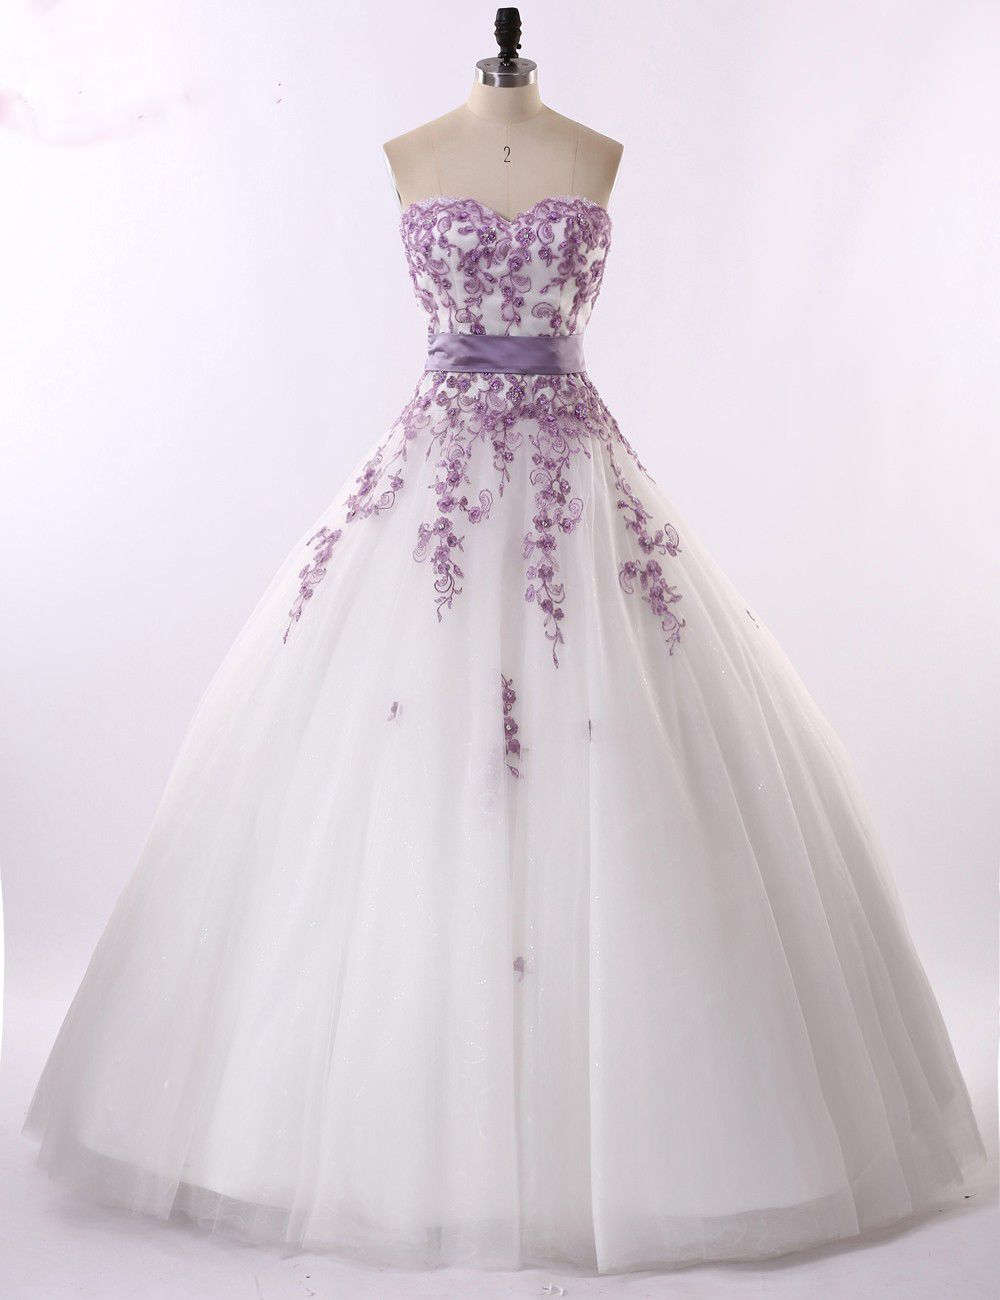 Real Photo White And Light Purple Sweetheart Wedding Dresses Embroidery Dress 2017 Crystal Floor Length